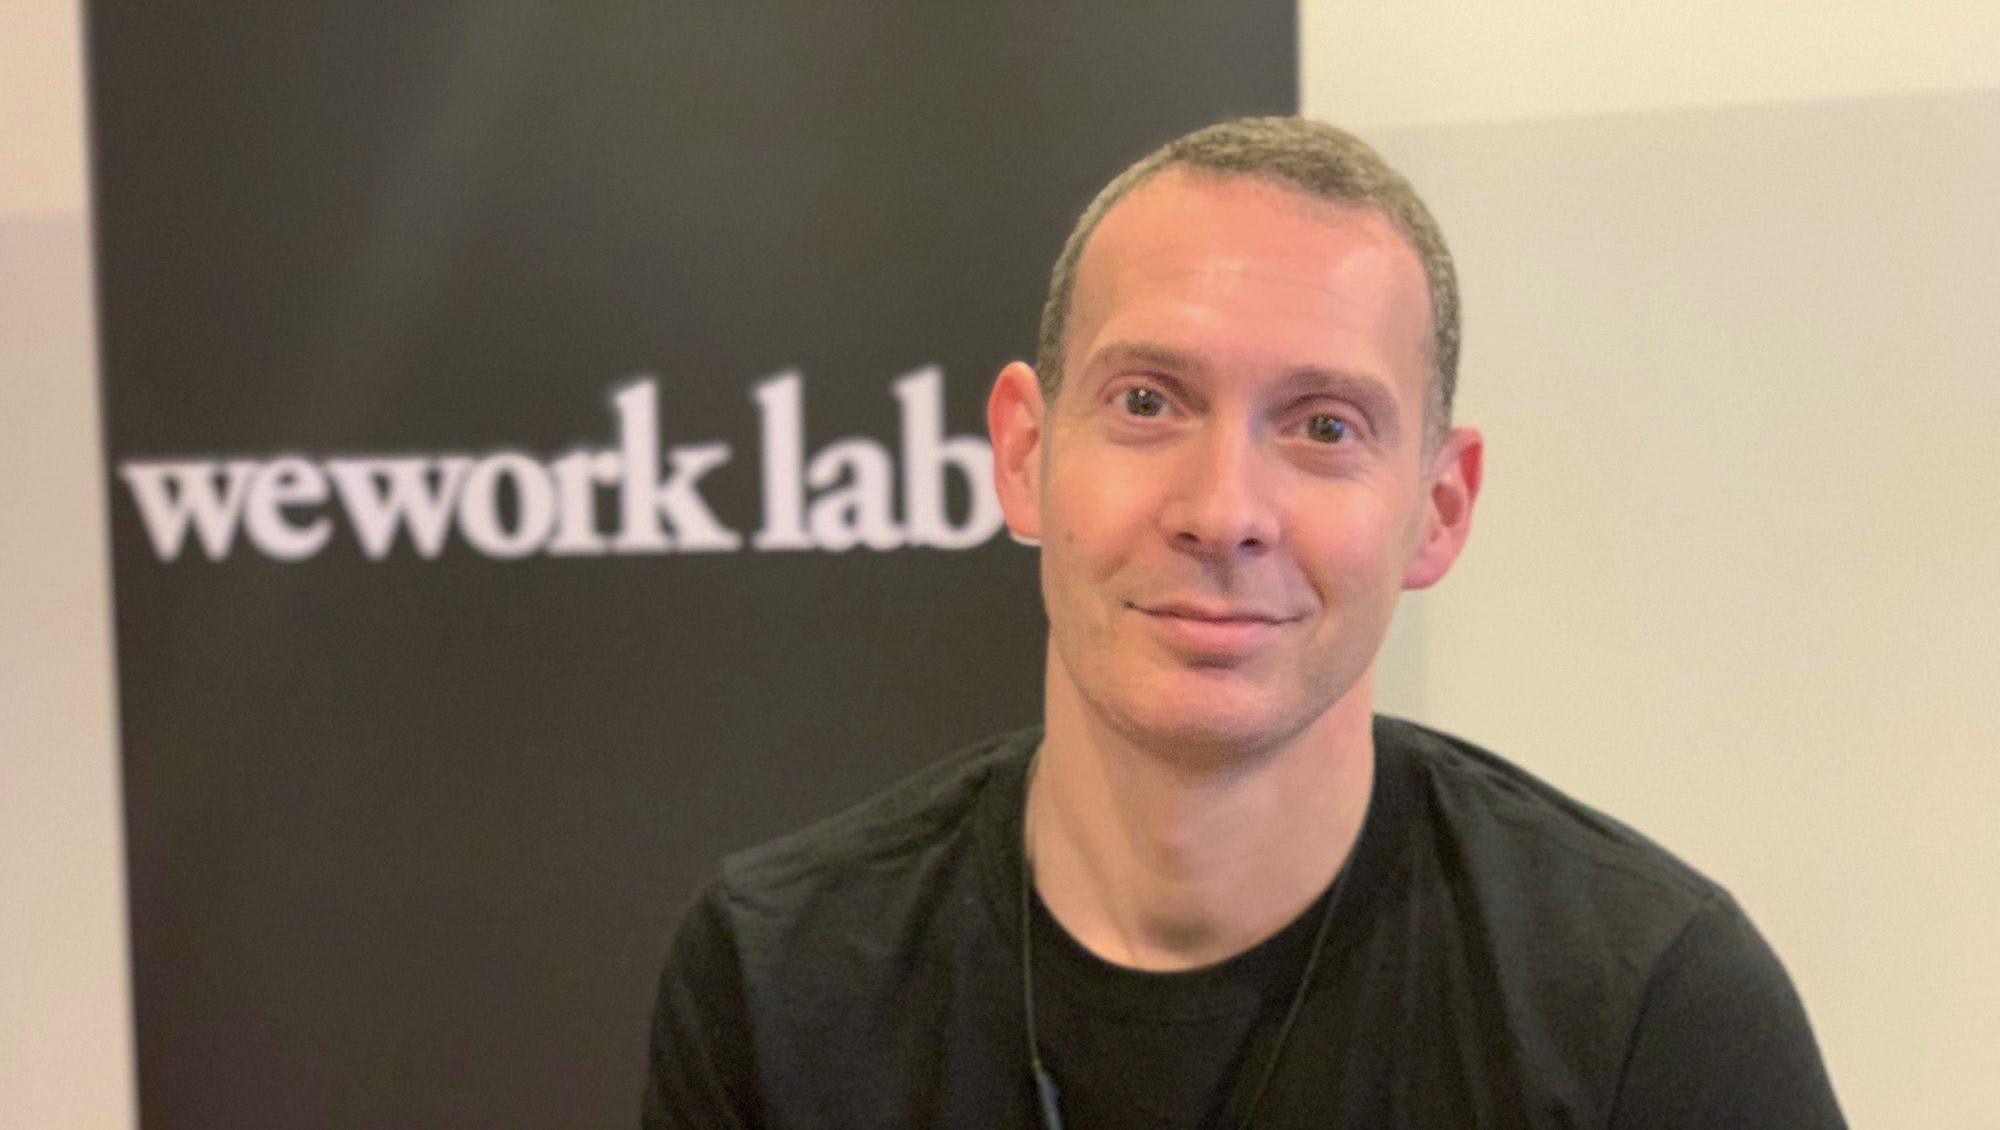 Meet Our London Labs Team: Kenneth Siber